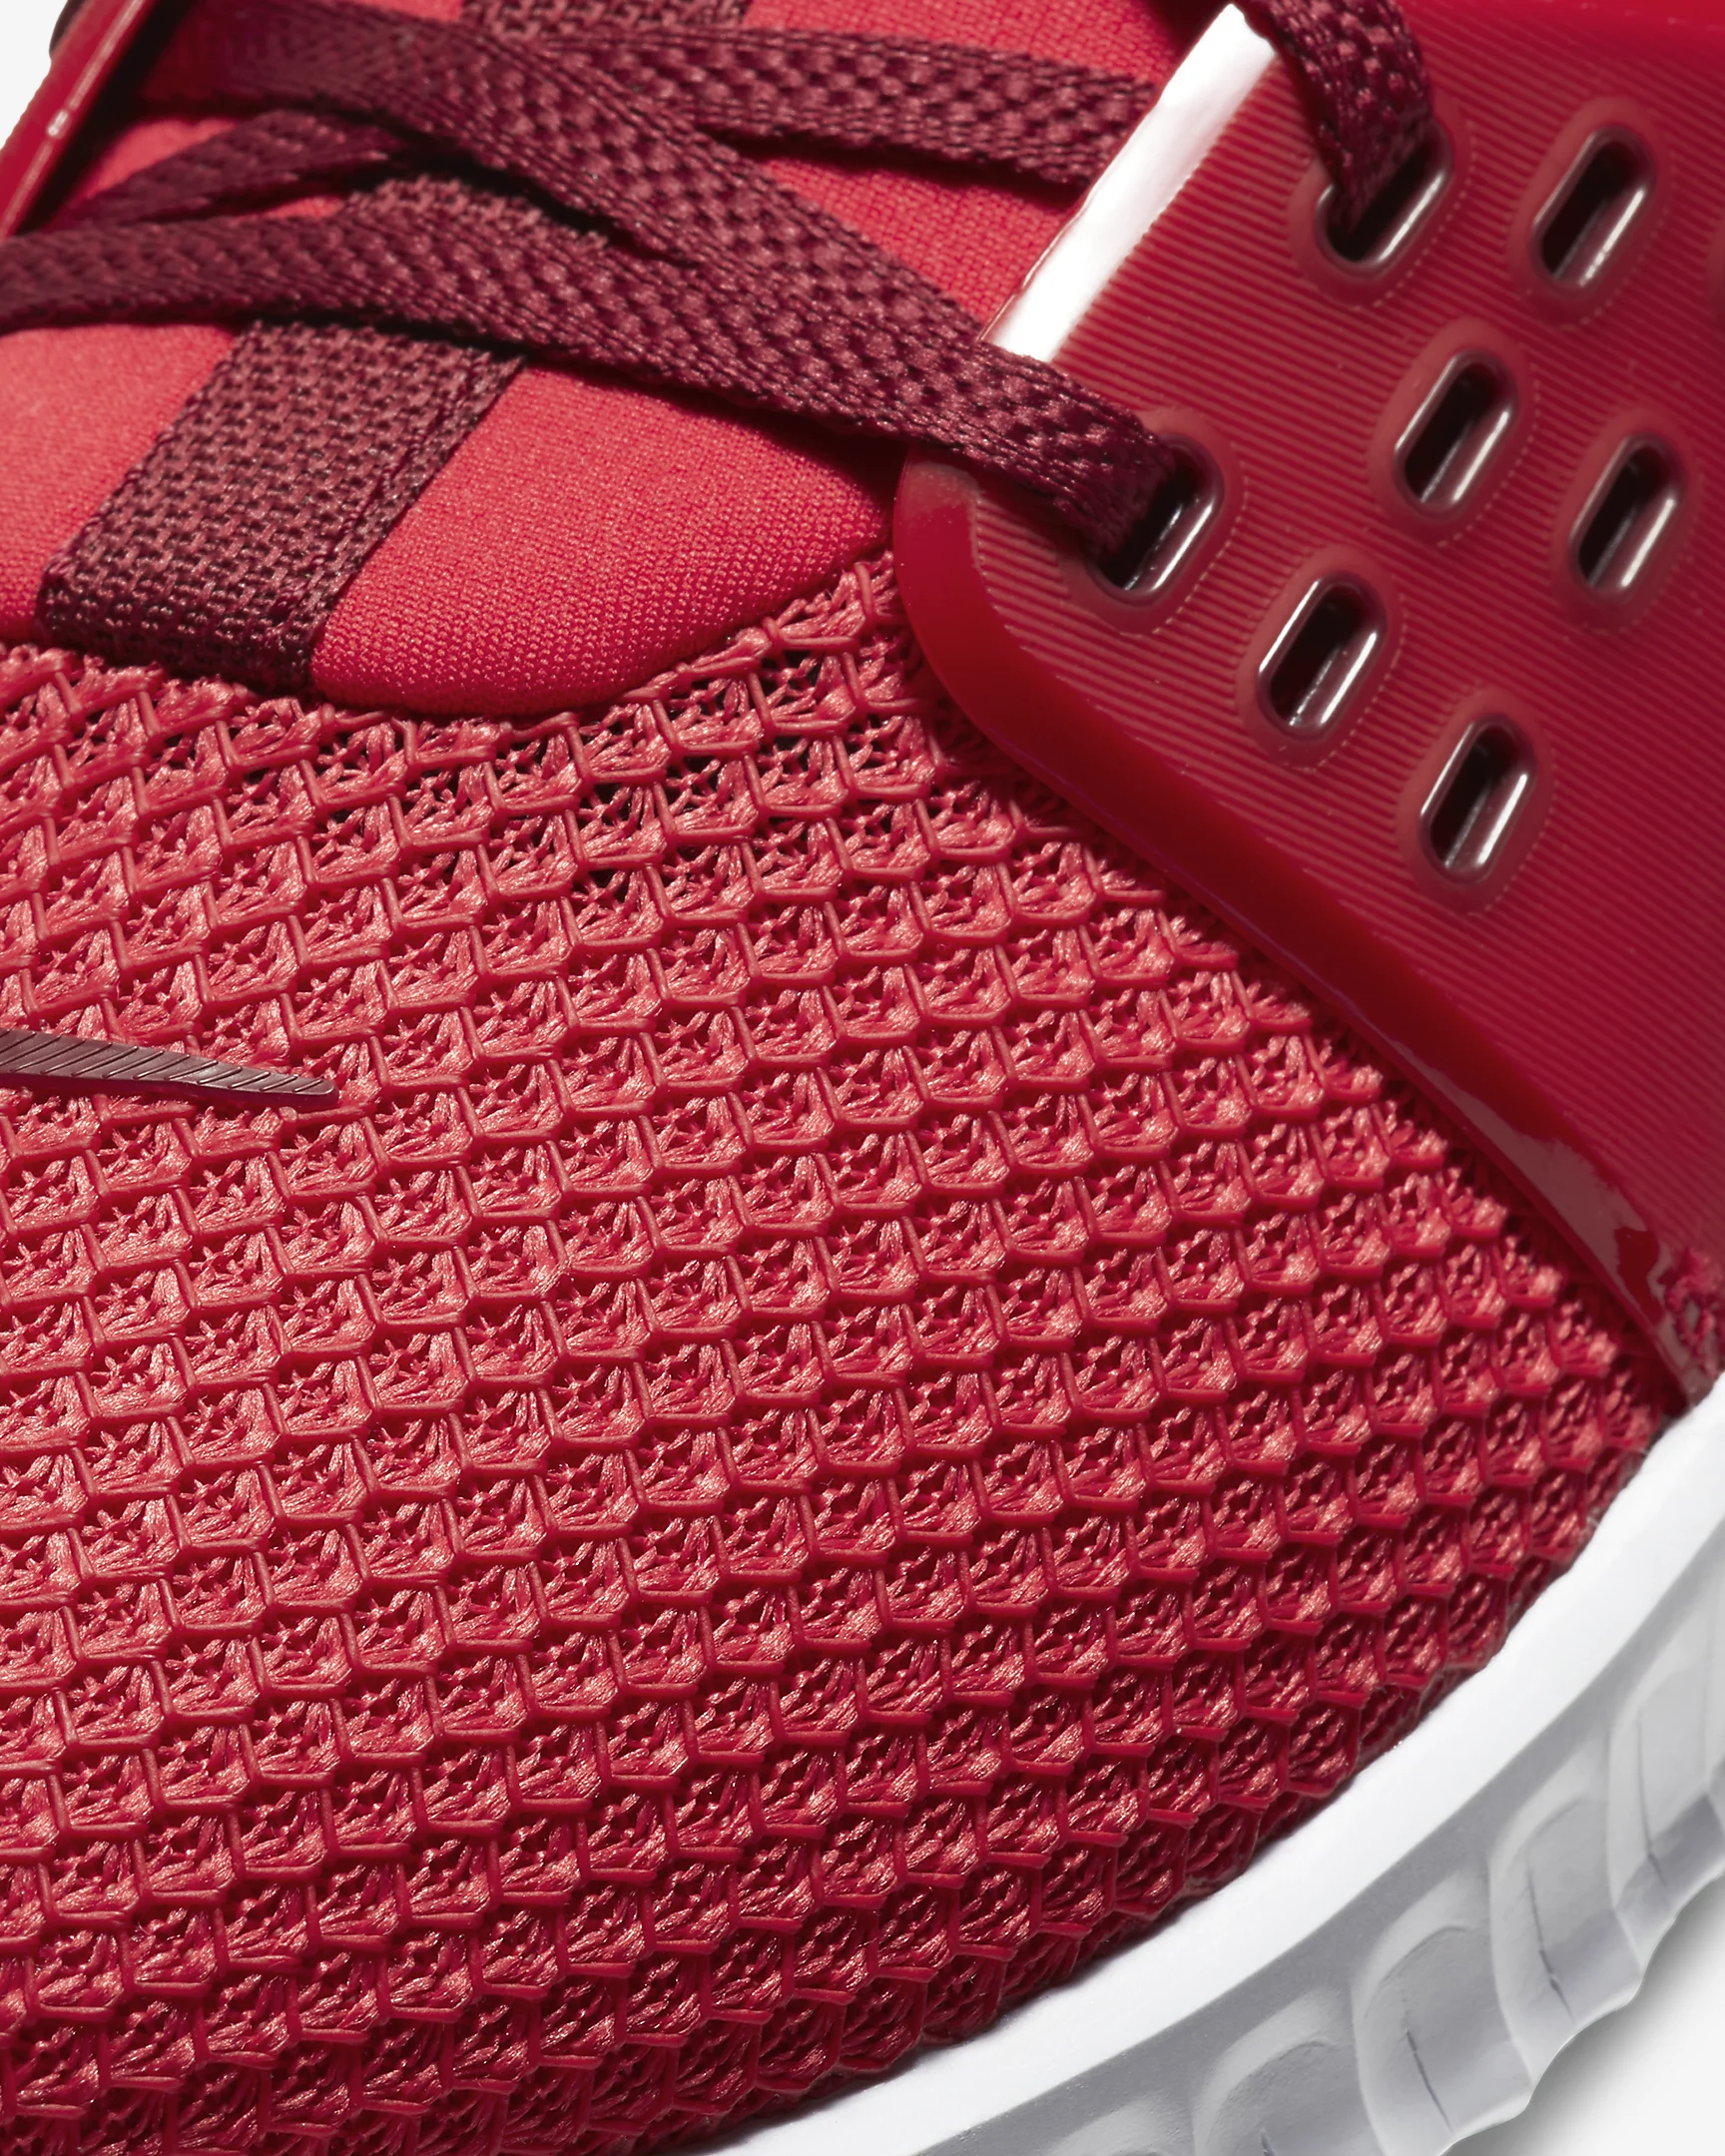 New Nike Free X Metcon 2 Colorway Cross Trainer For Men University Red Black White Team Red Black And Red Metcon Nike Free